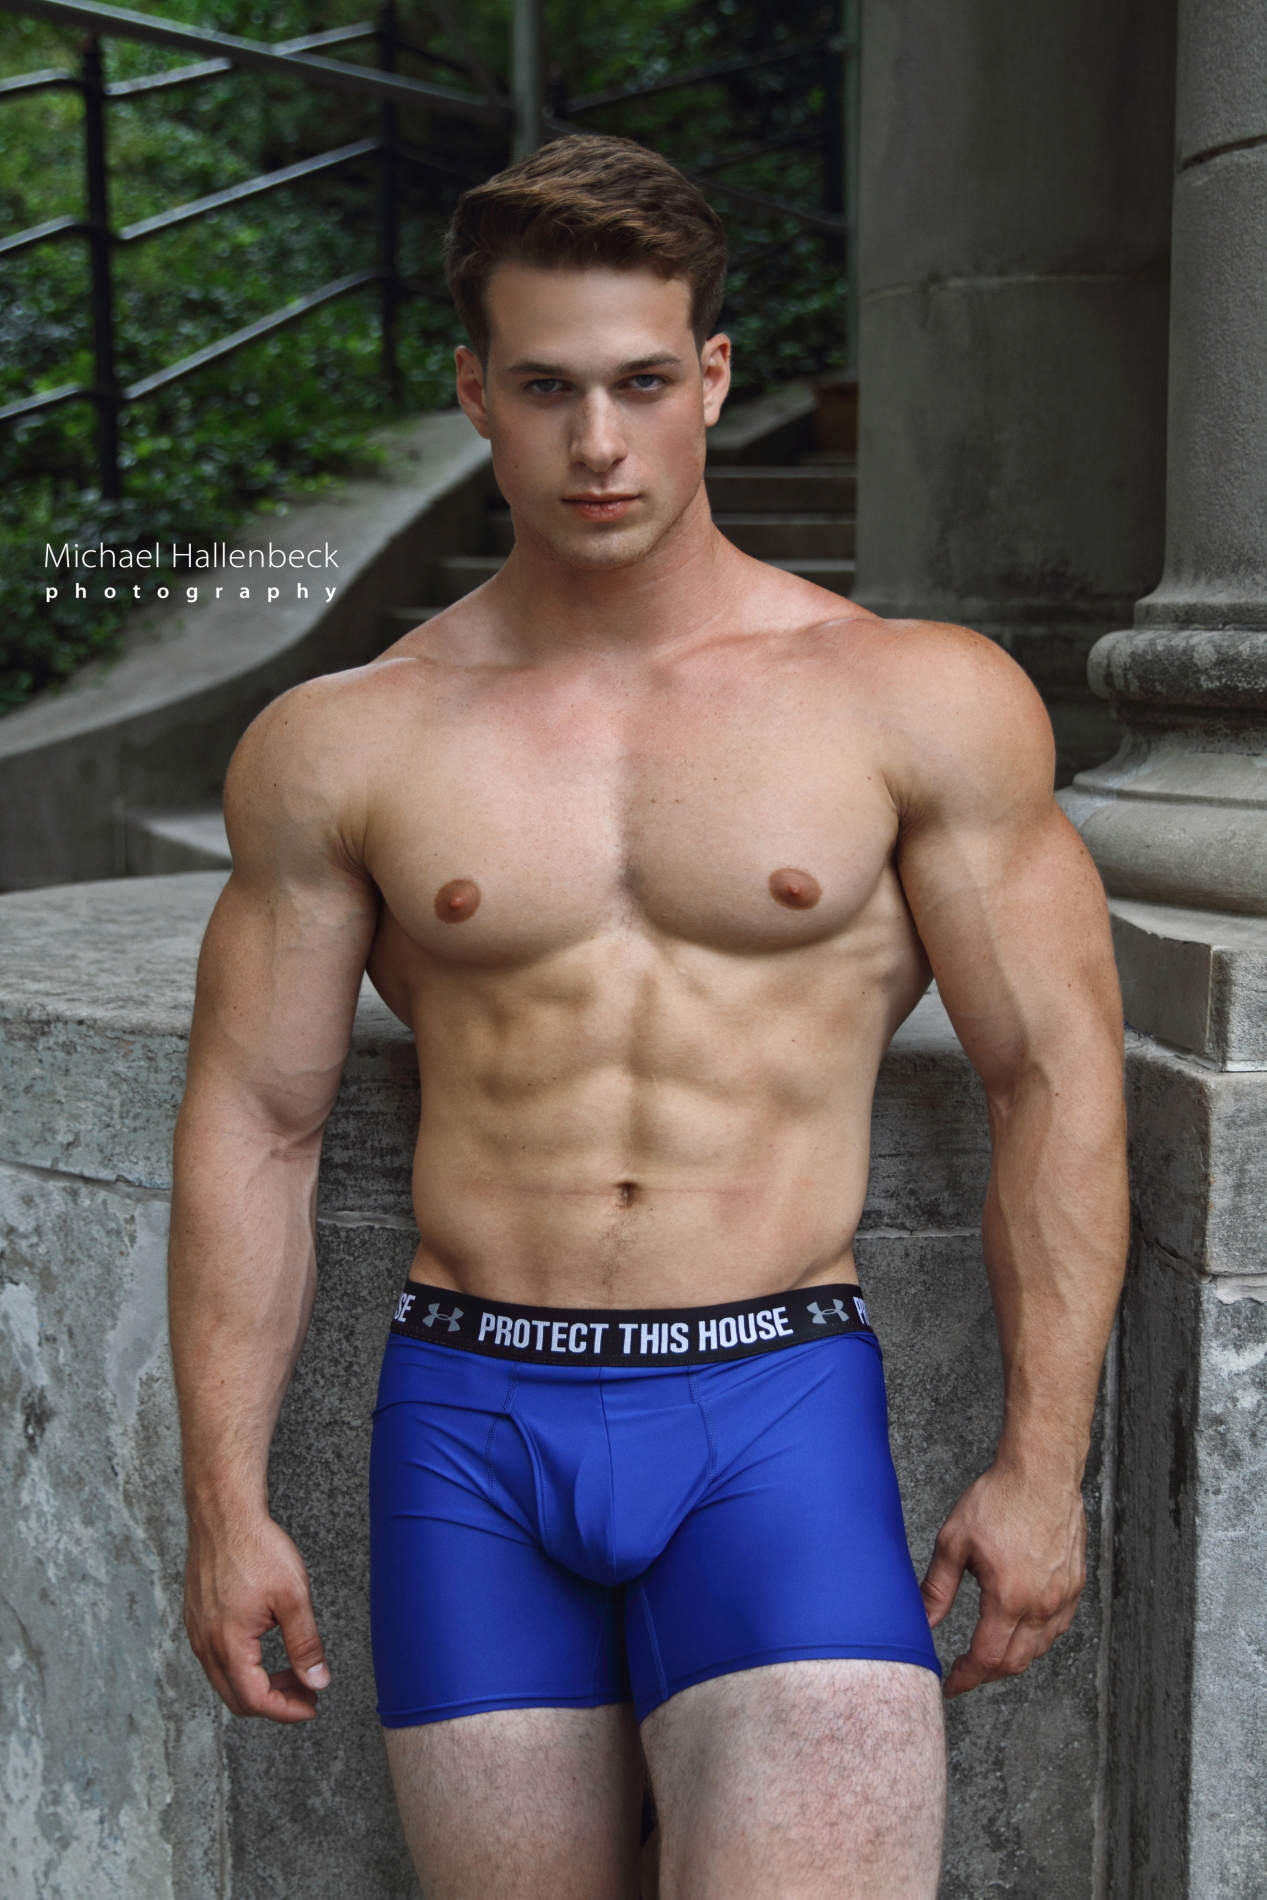 nick-sandell-by-michael-hallenbeck-pnv-network17